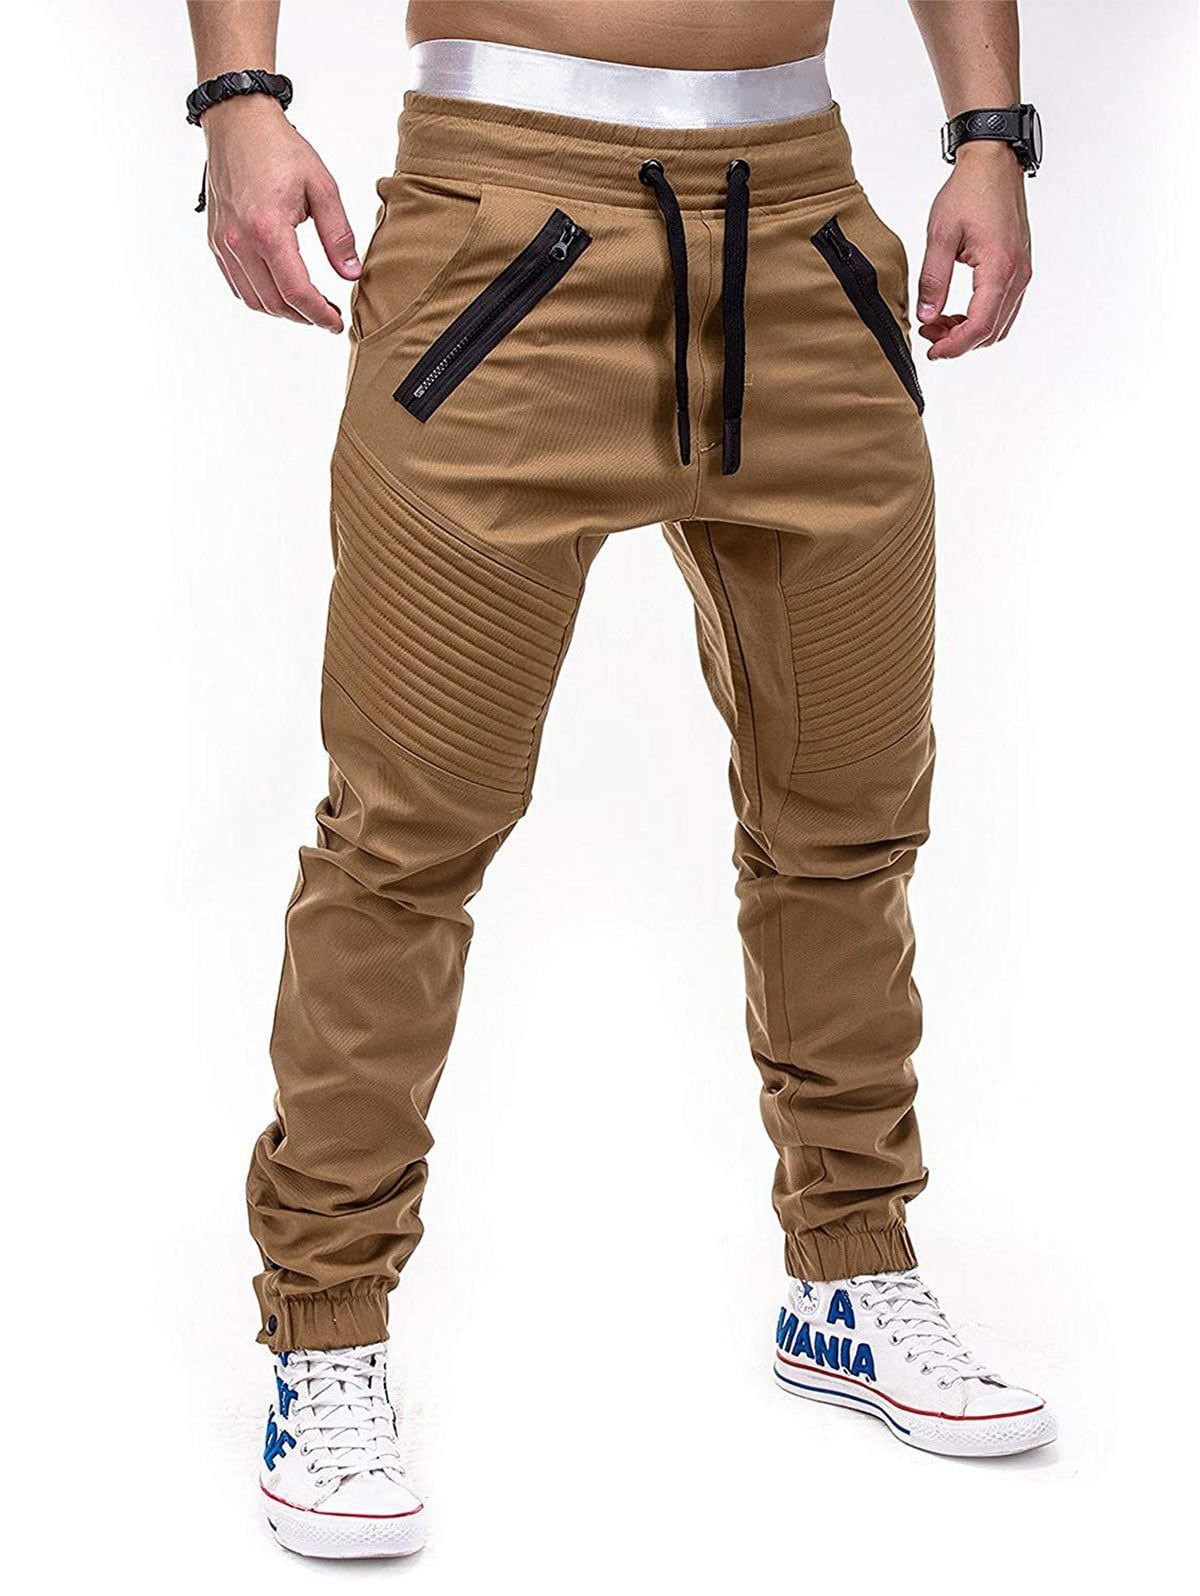 Hand Stitch Mens Jogging Suit Gym Hub Fashion and work out in Workout Fashion